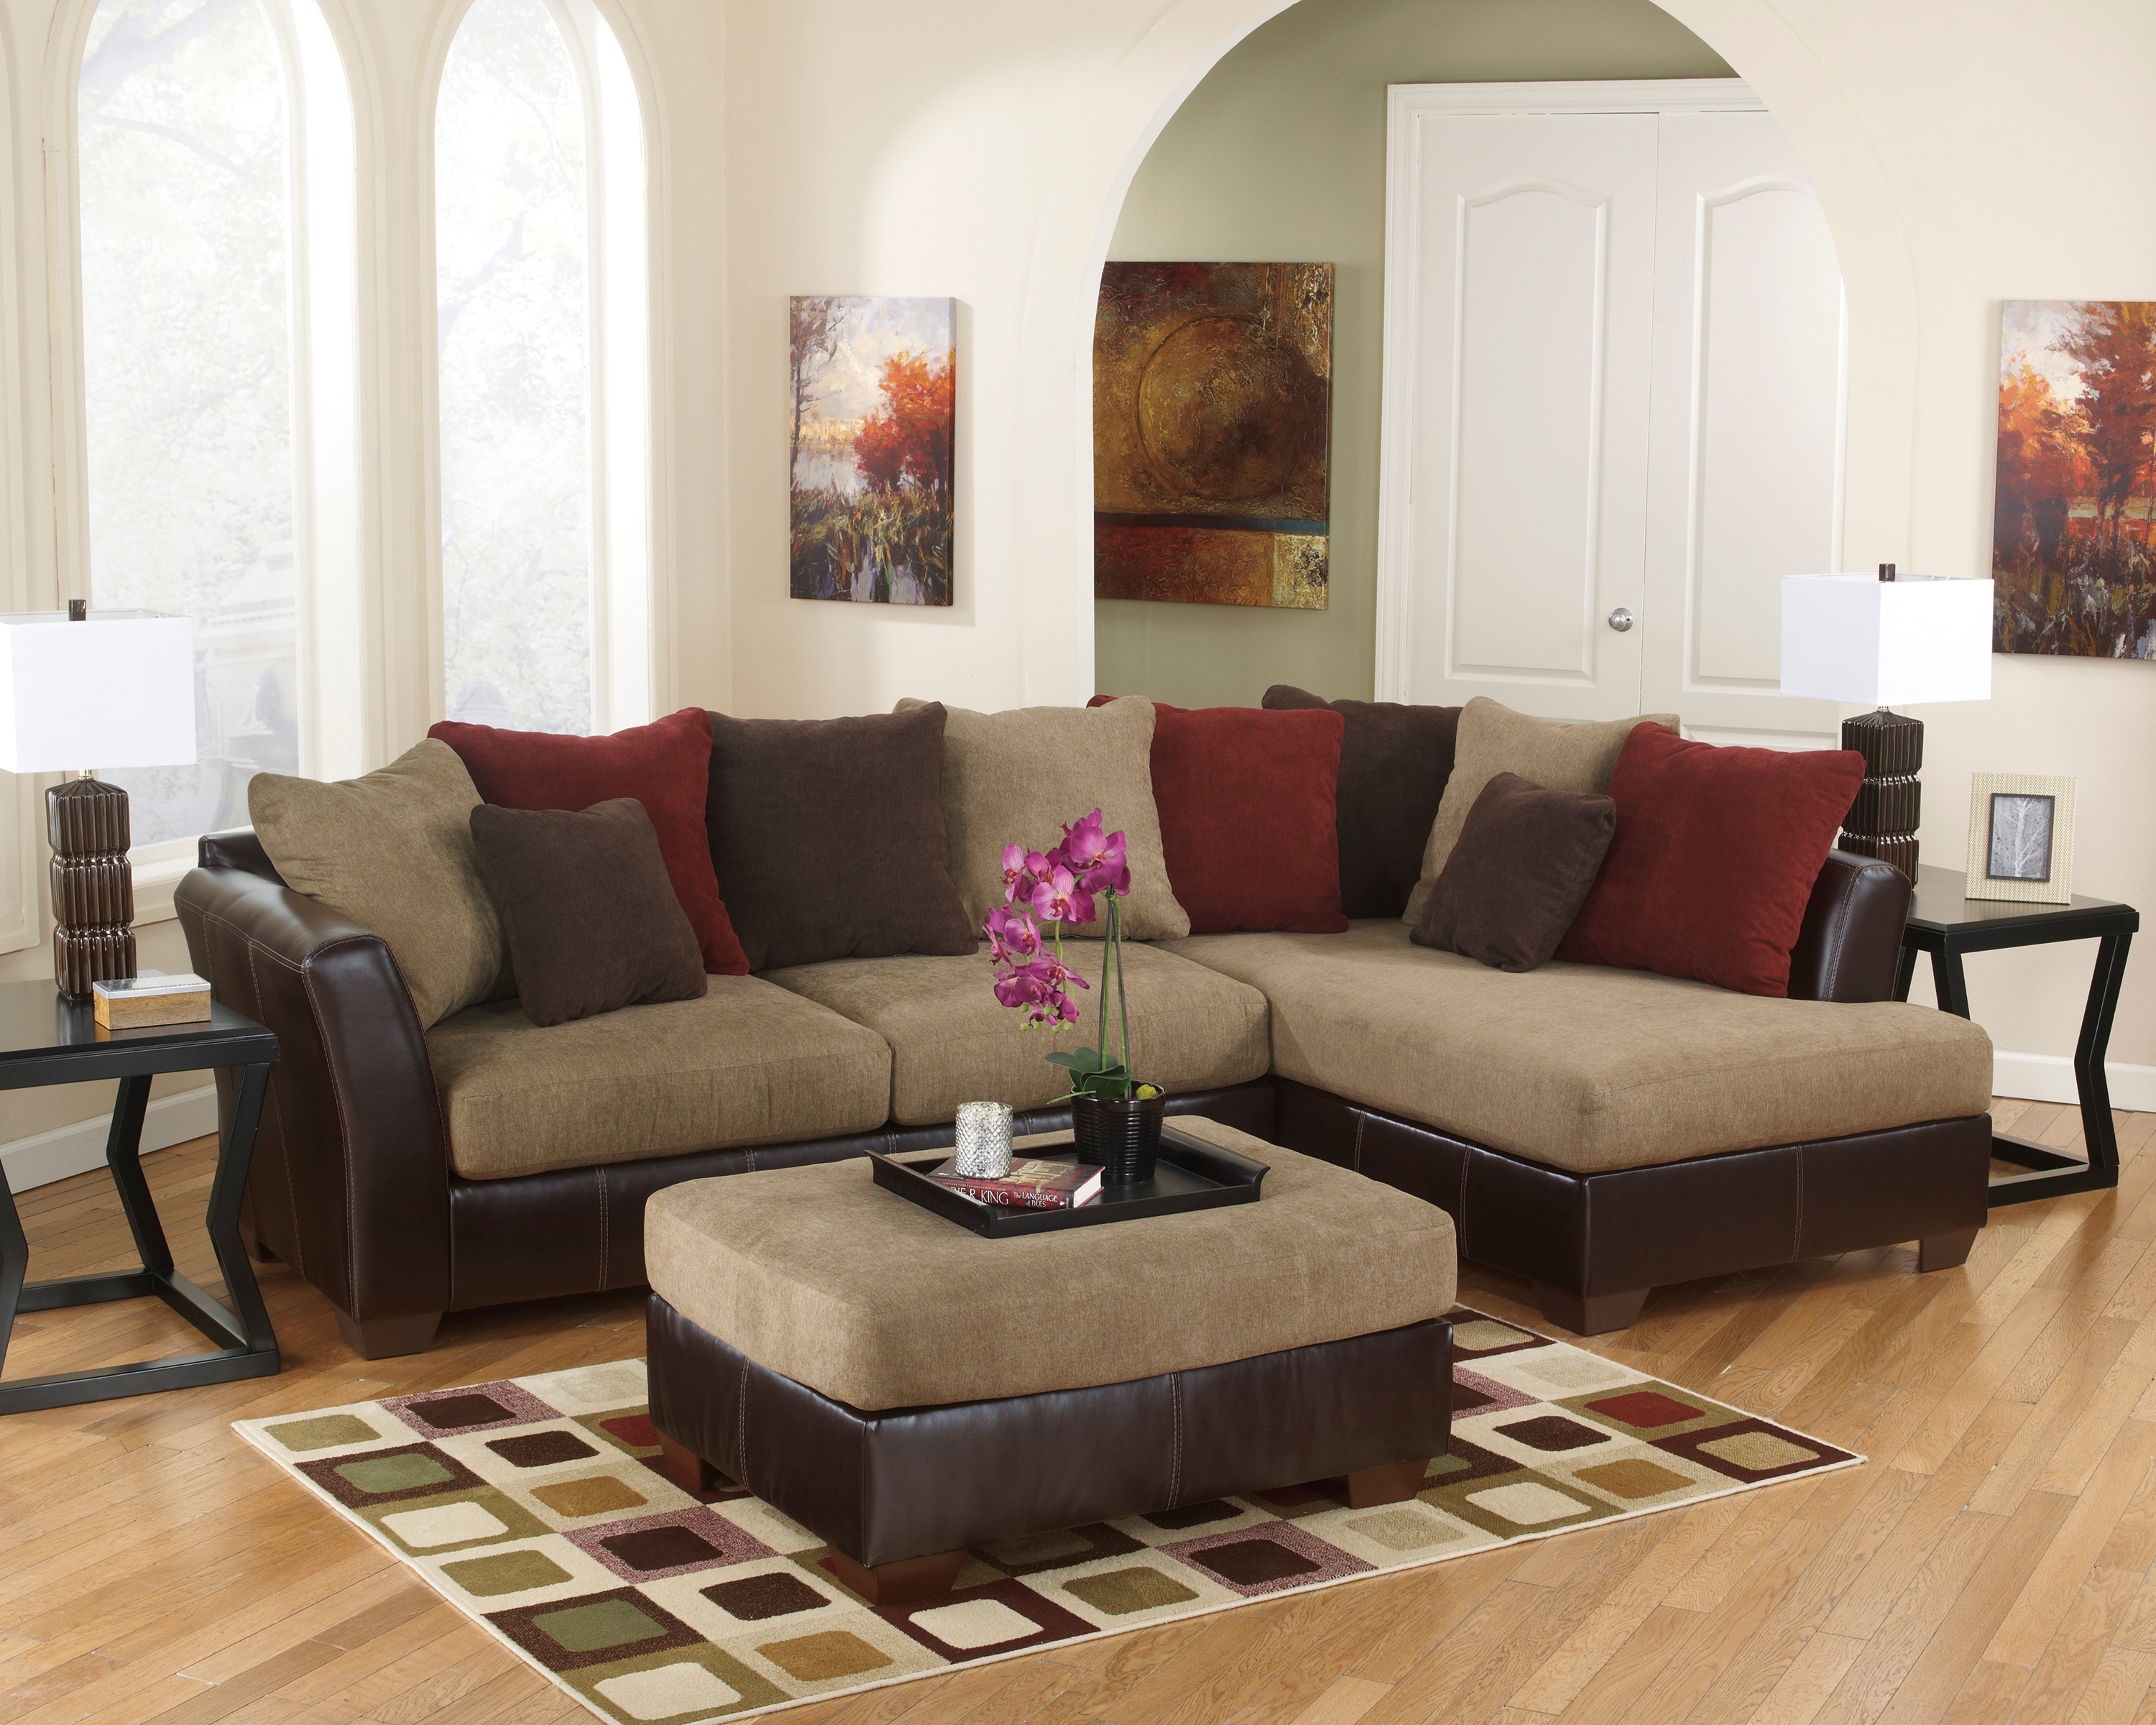 Ashley Furniture Homestore Outlet In Oakland Ca Whitepages